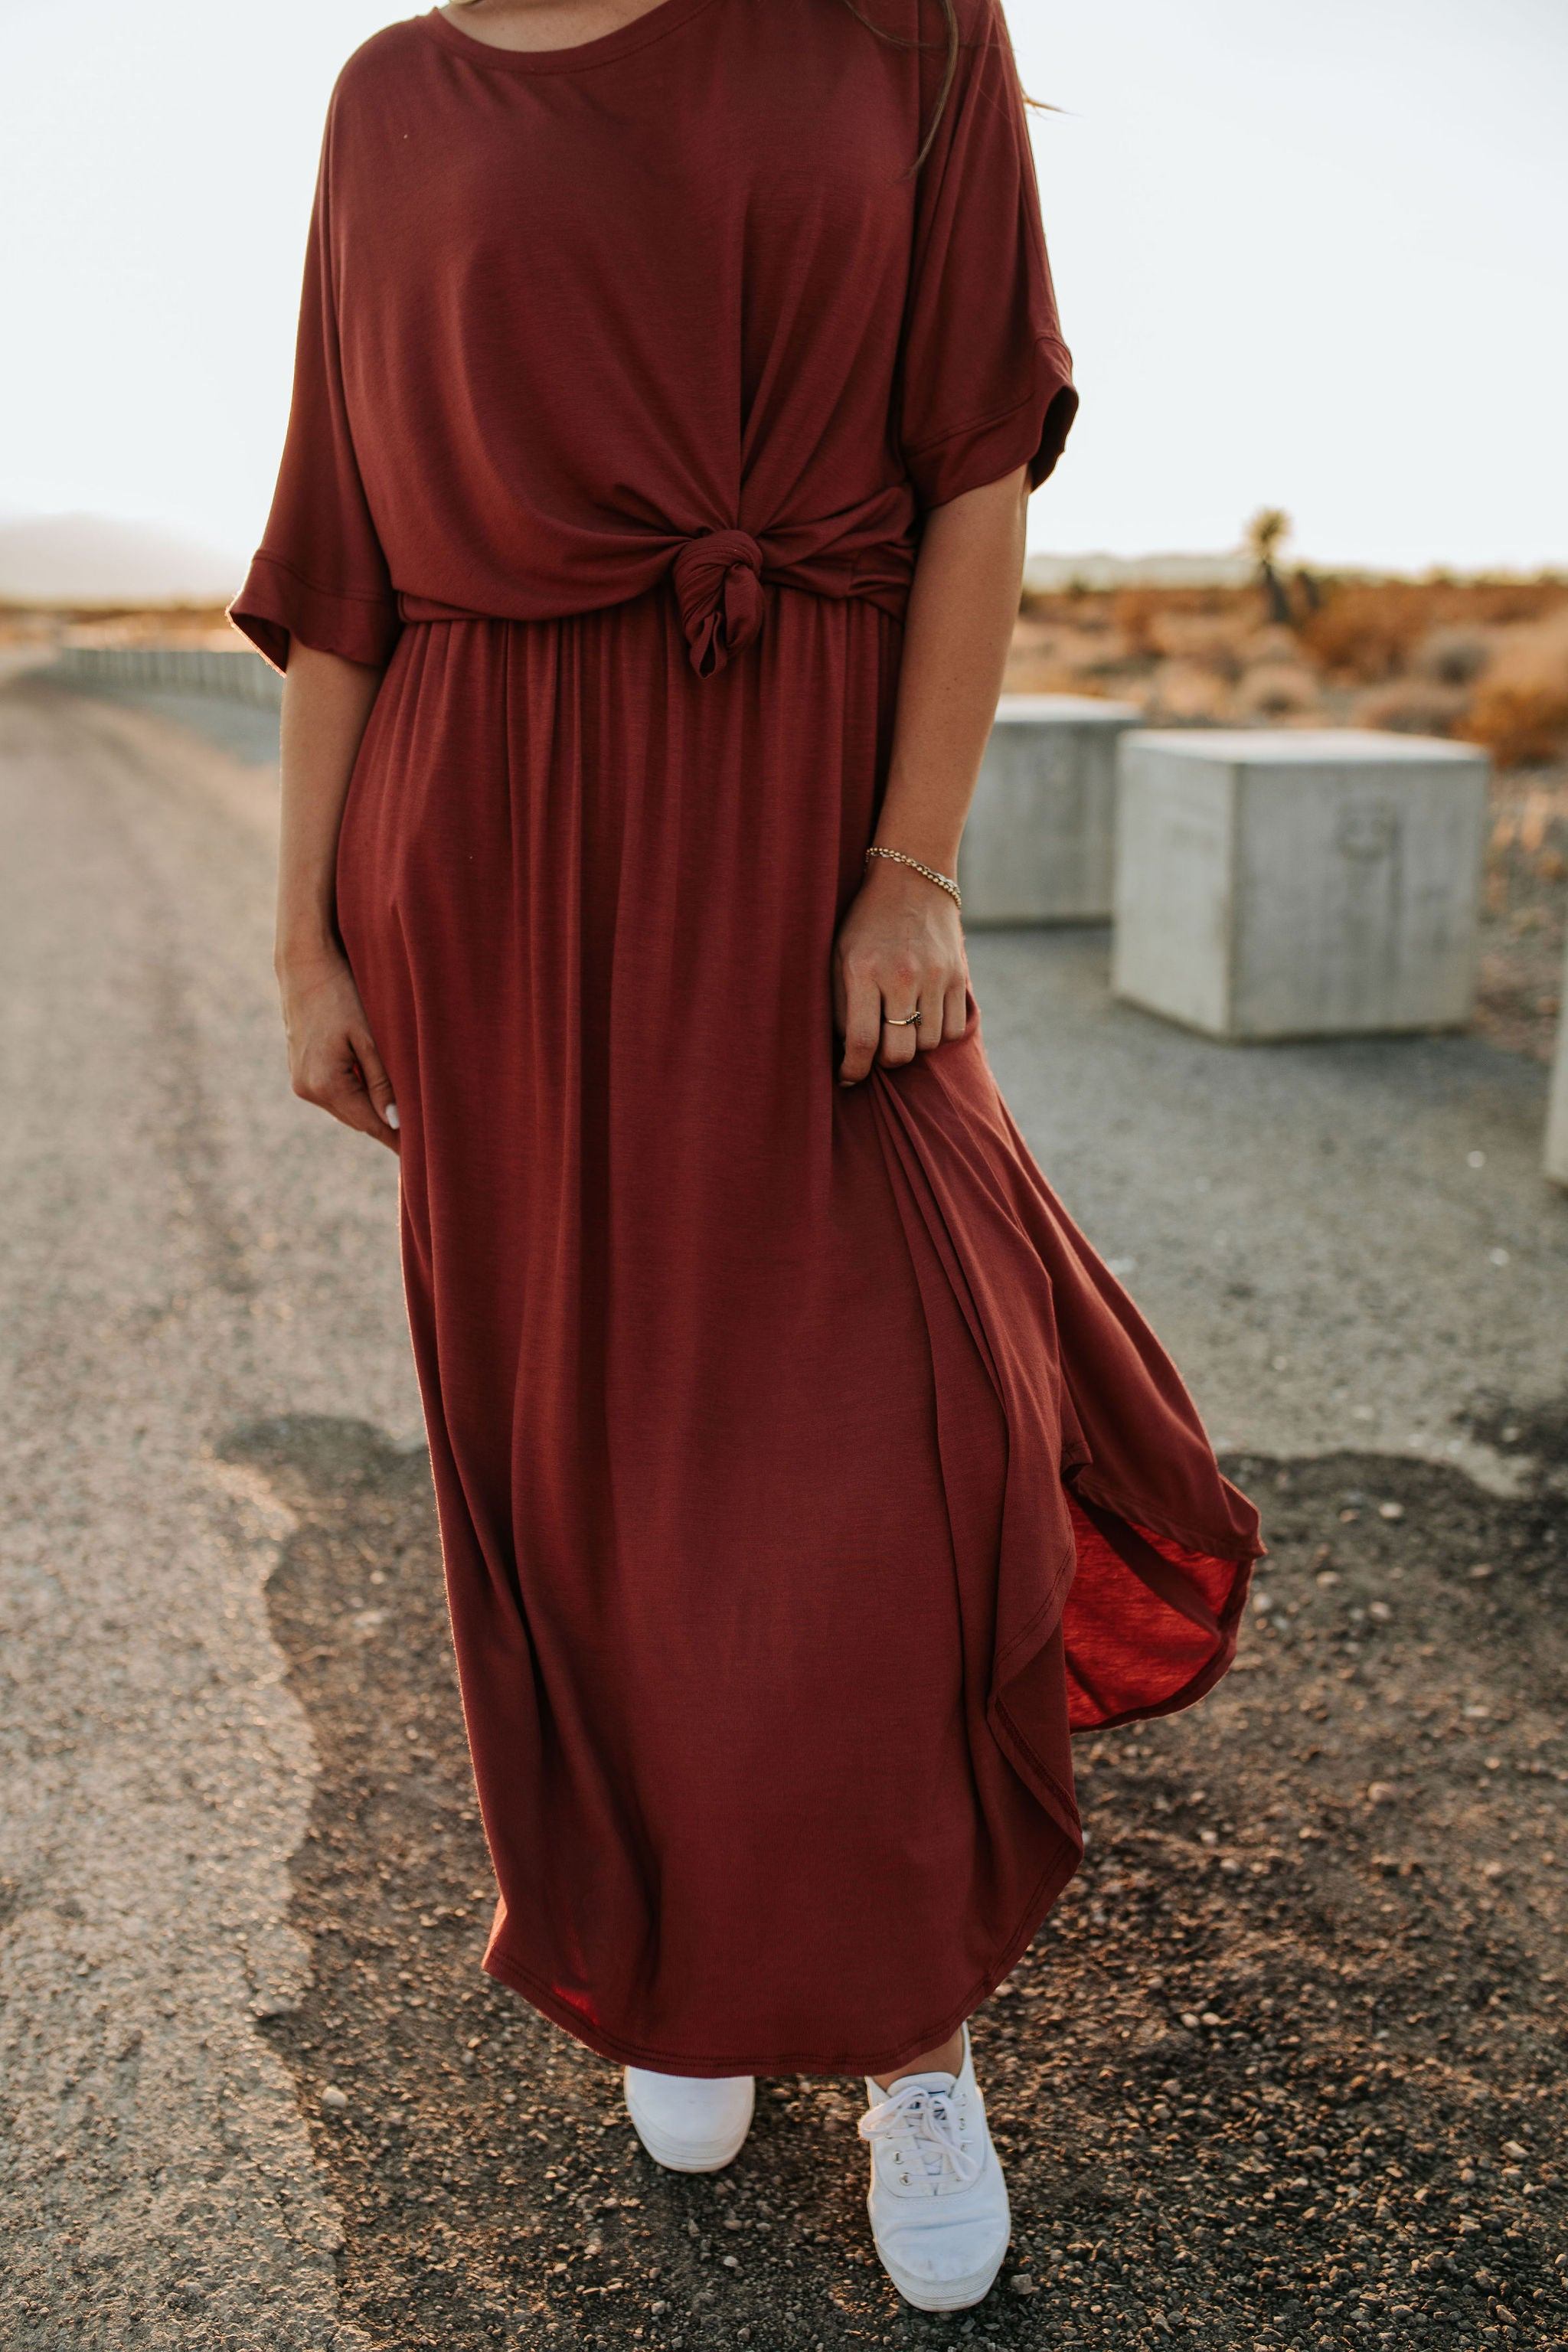 THE LOST WITHOUT YOU SKIRT SET IN MARSALA